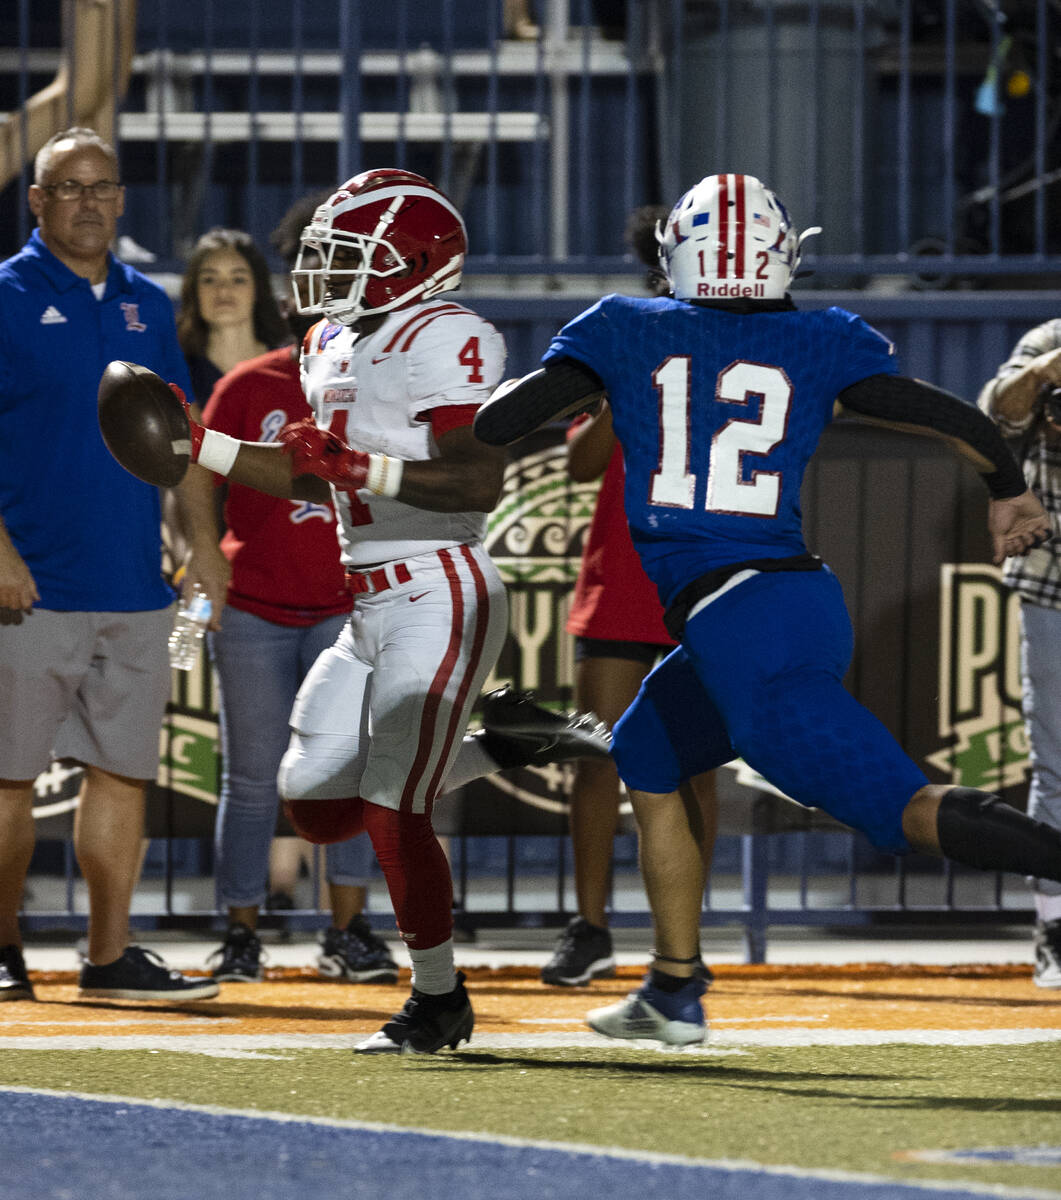 Mater Dei High's running back Raleek Brown of Calif., (4) goes for a touchdown as Liberty Hi ...